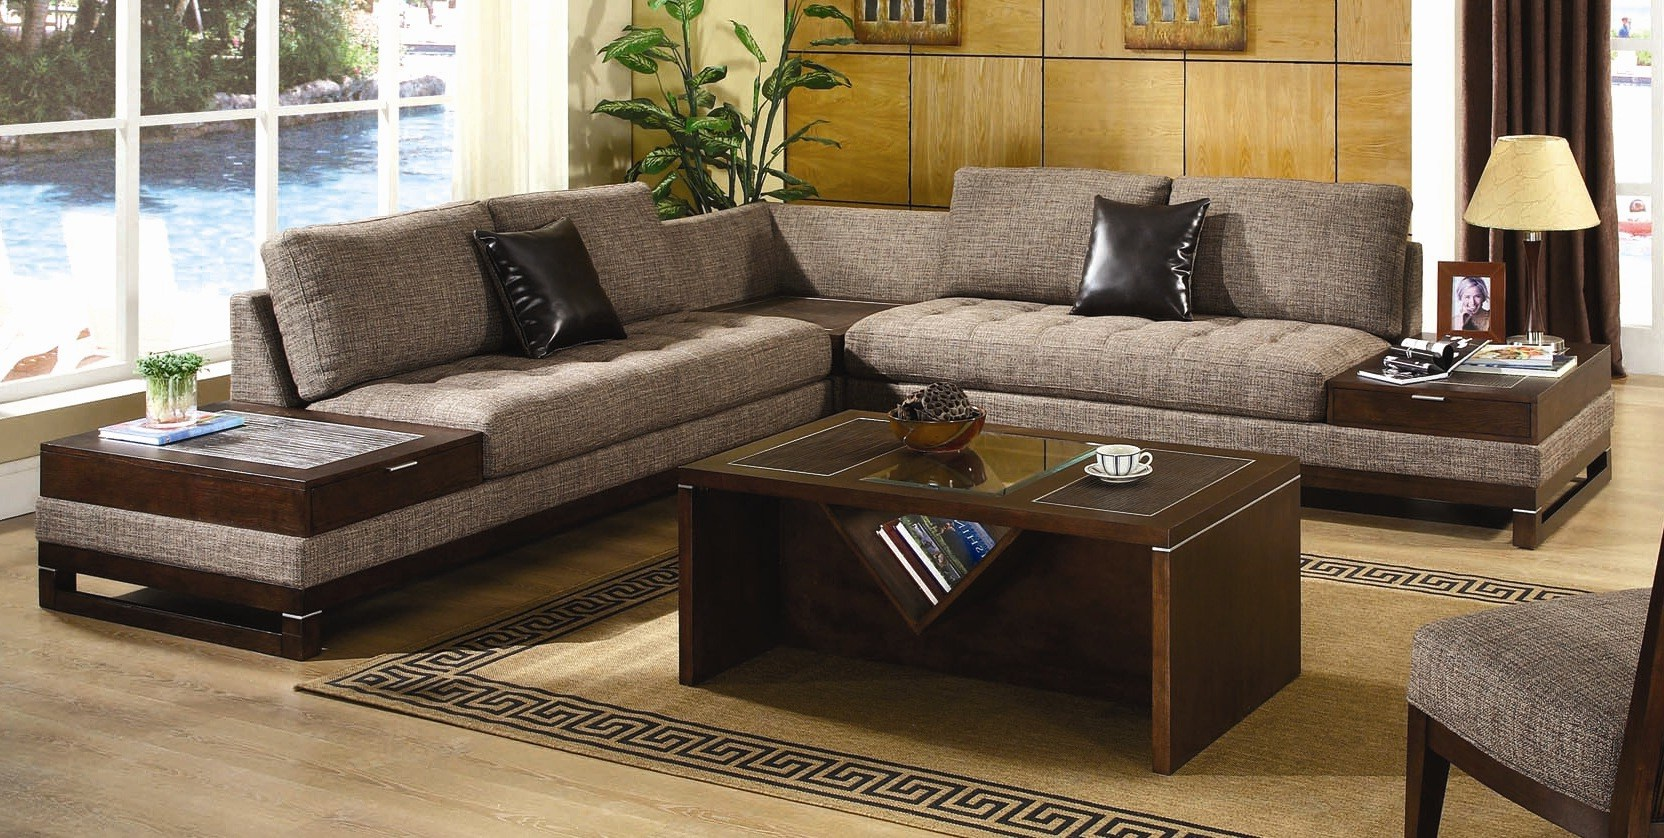 3 piece coffee table sets under 200 for Living room 3 piece sets